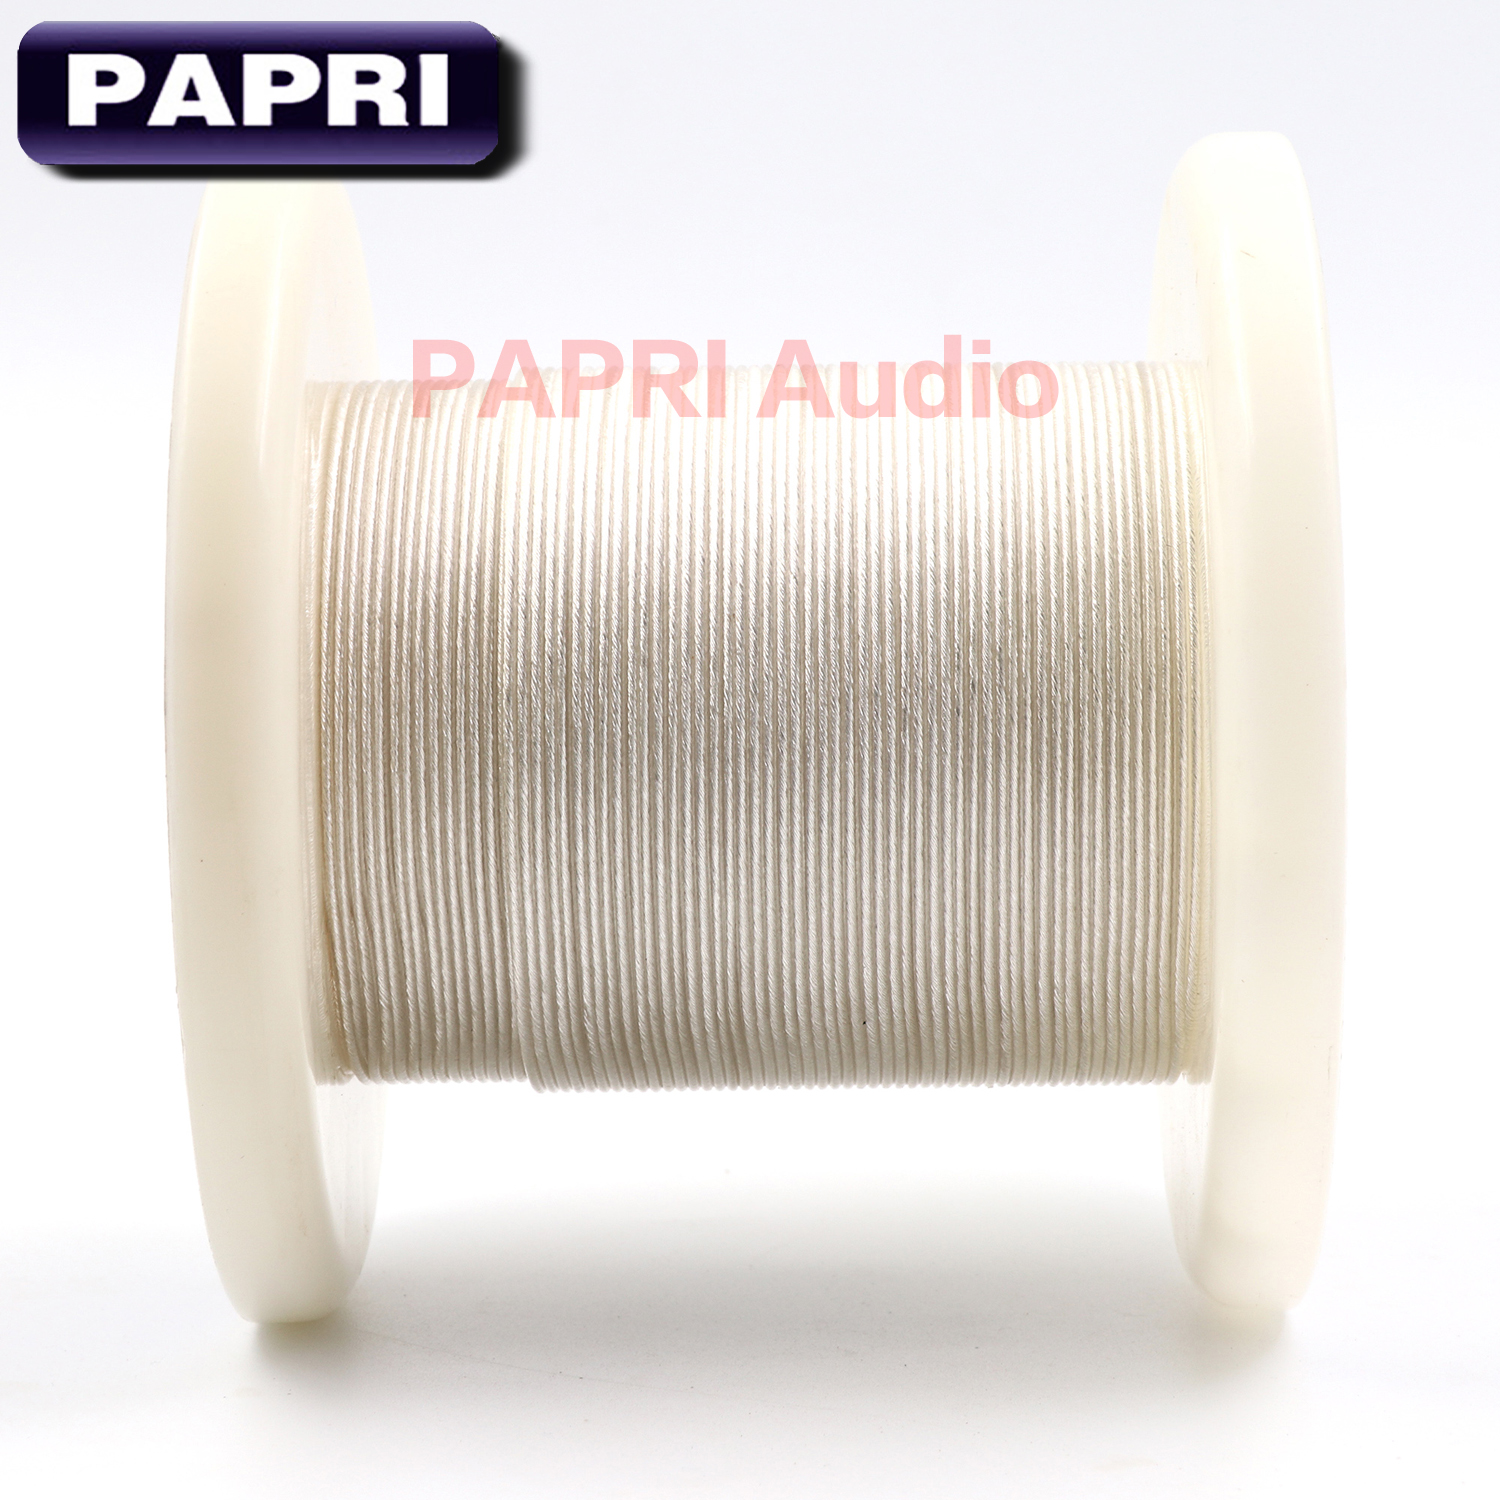 PAPRI Newest GM03 DIY Upgrade Headphone Cable 4N OCC Silver Wire Hifi For Earphone Headsets Line Audio Litz Structure 49 Cores